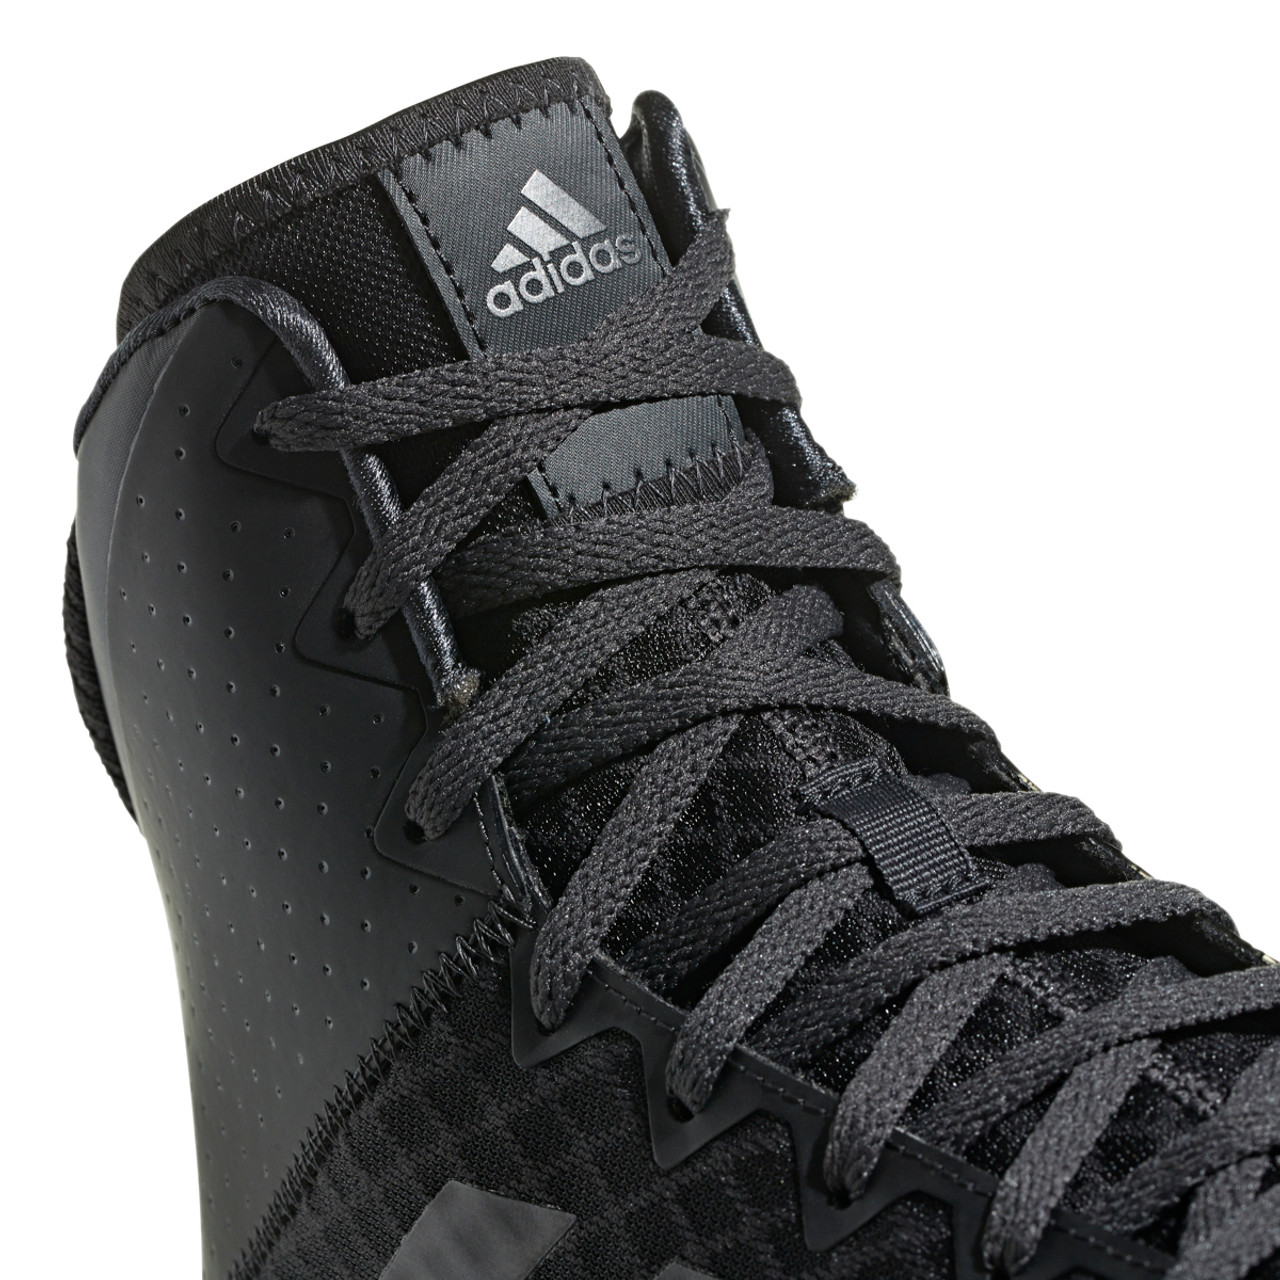 7aca44b980b Adidas Mat Wizard 4 Men s Wrestling Shoes AC6971 - Carbon